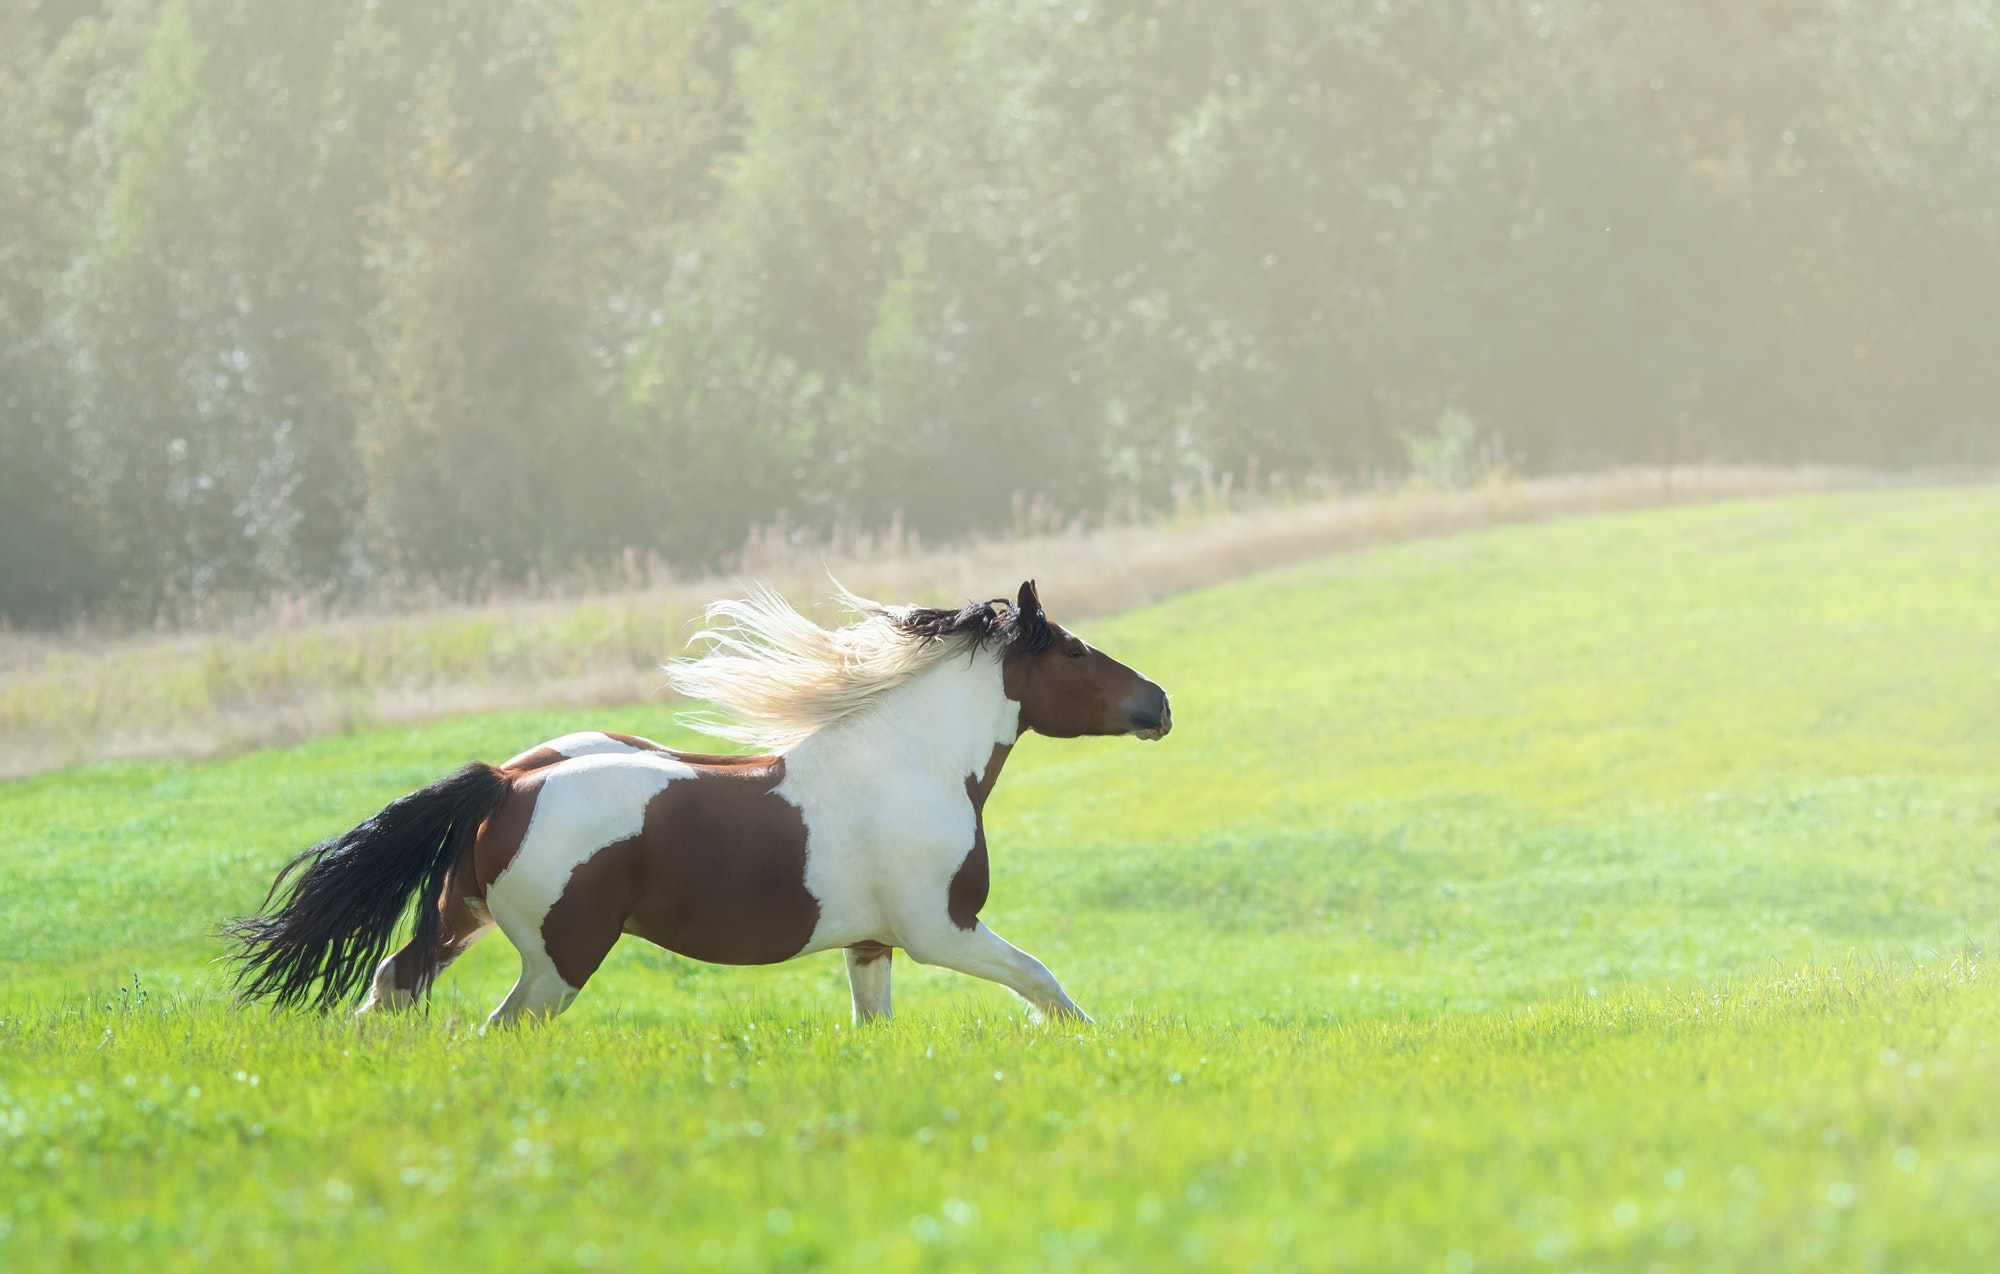 Paint horse galloping across summer green meadow.